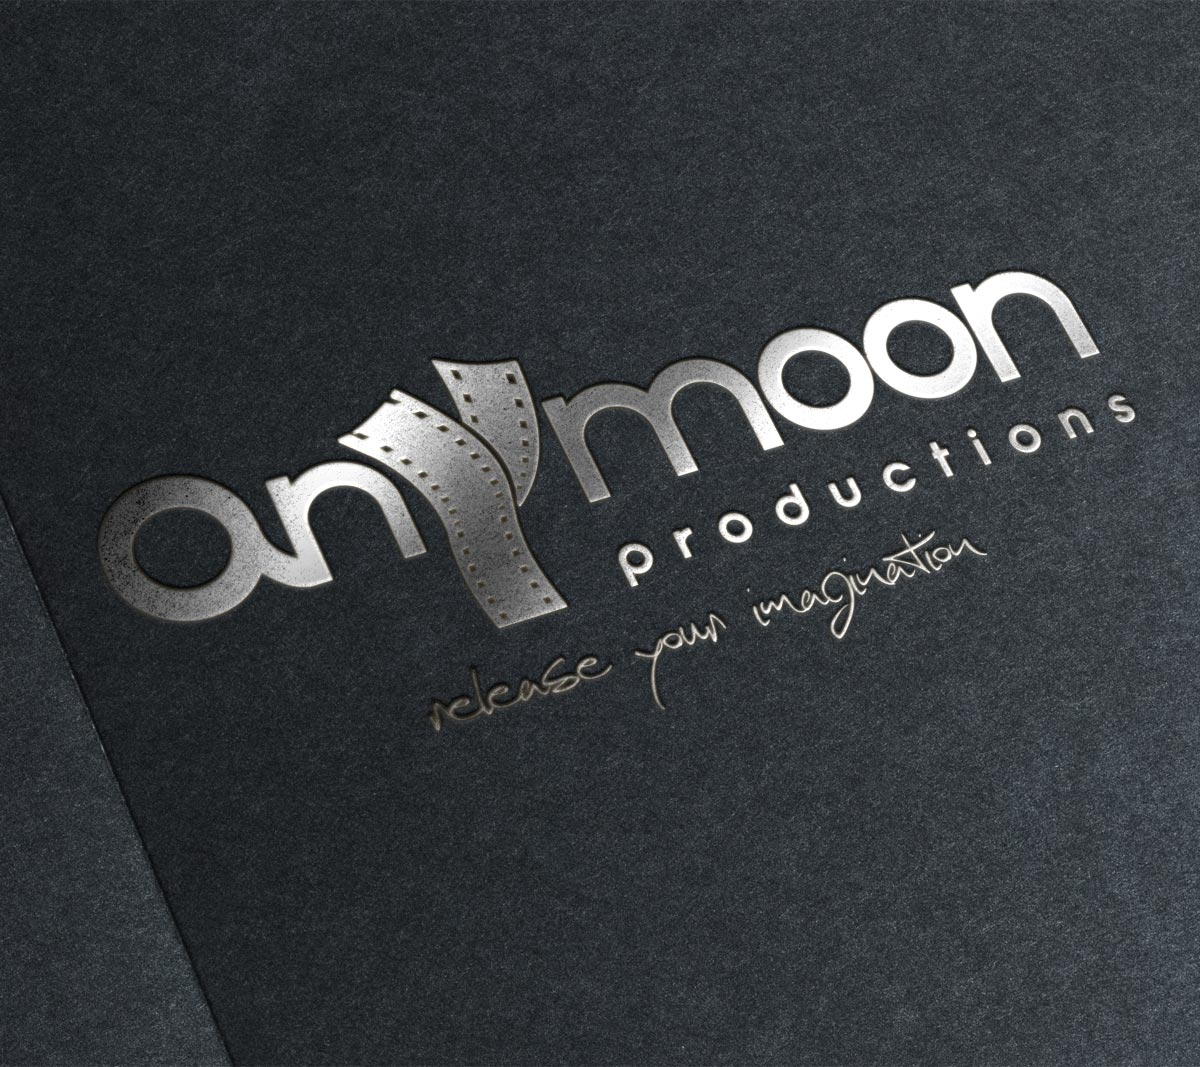 anymoon_productions-logo-00